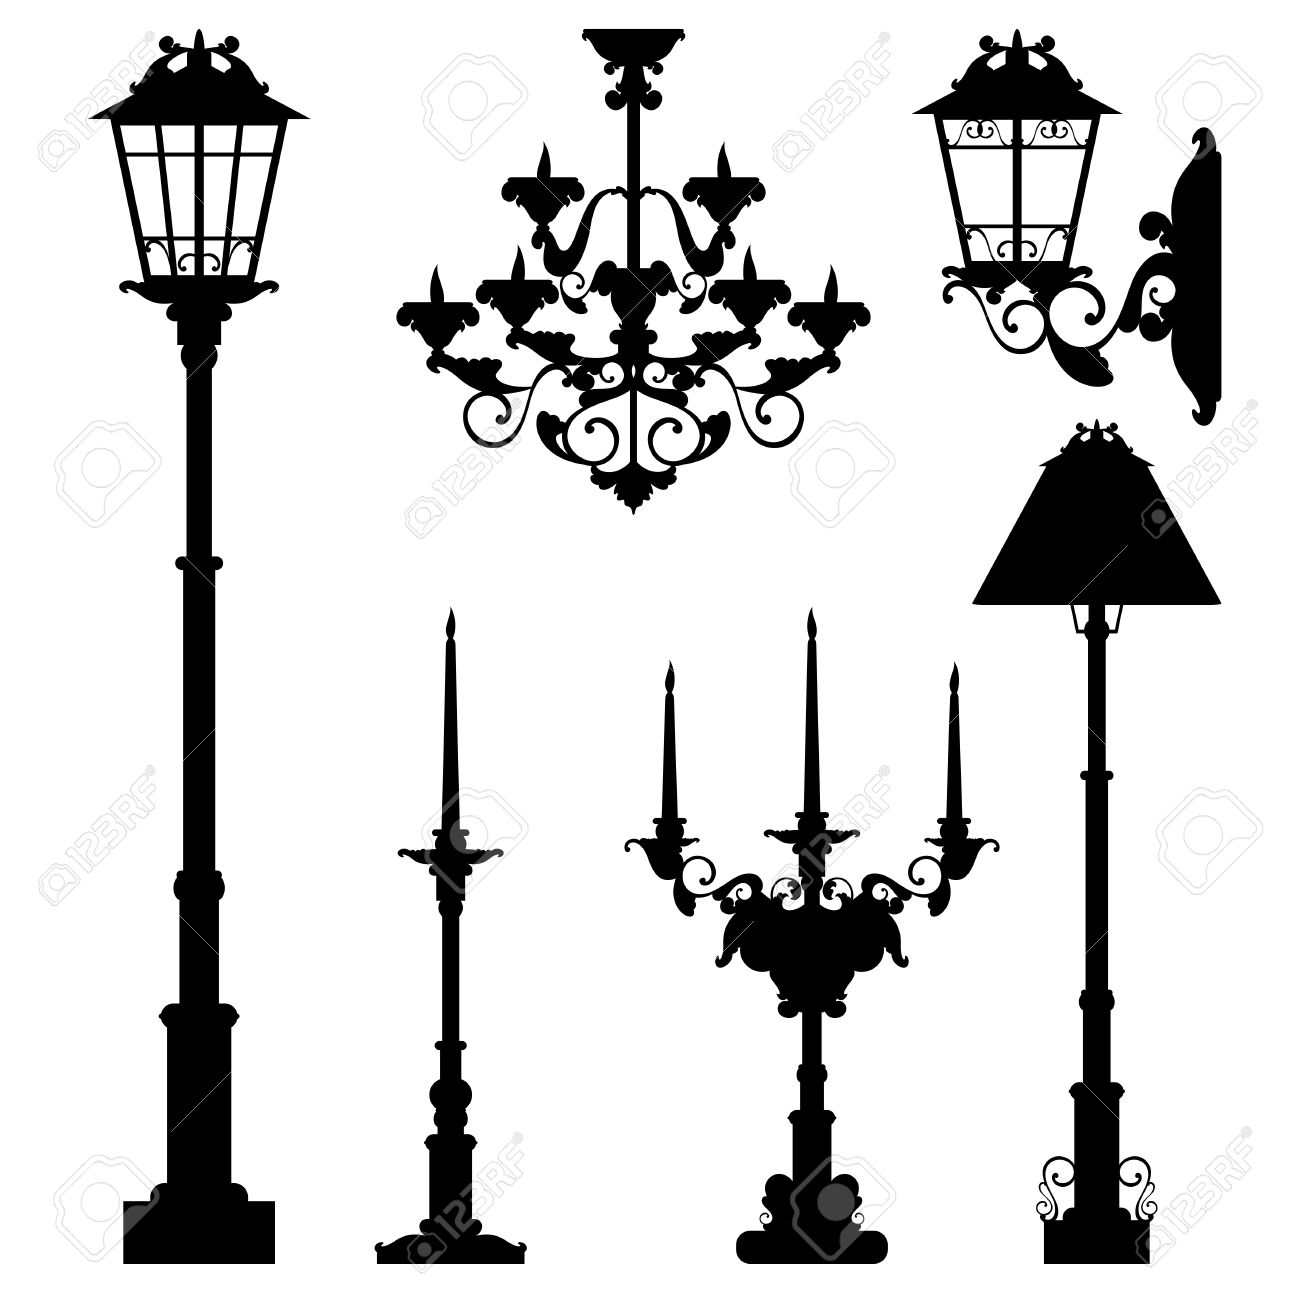 street lamps and interior lighting collection - black vector silhouettes set - 40402579